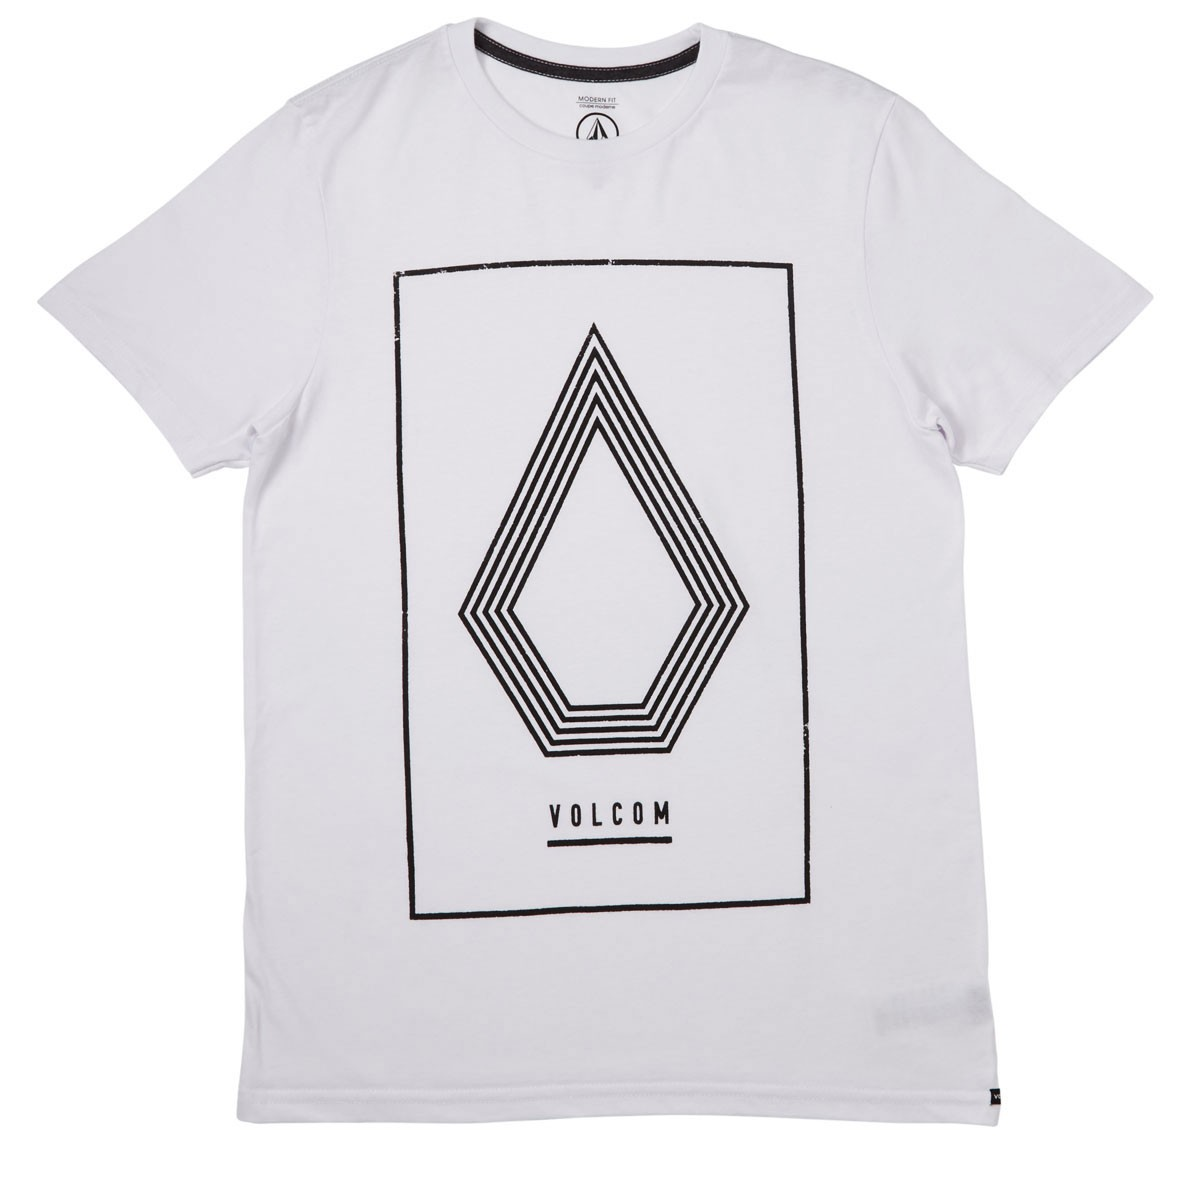 Line Drawing Shirt : Volcom line art t shirt white